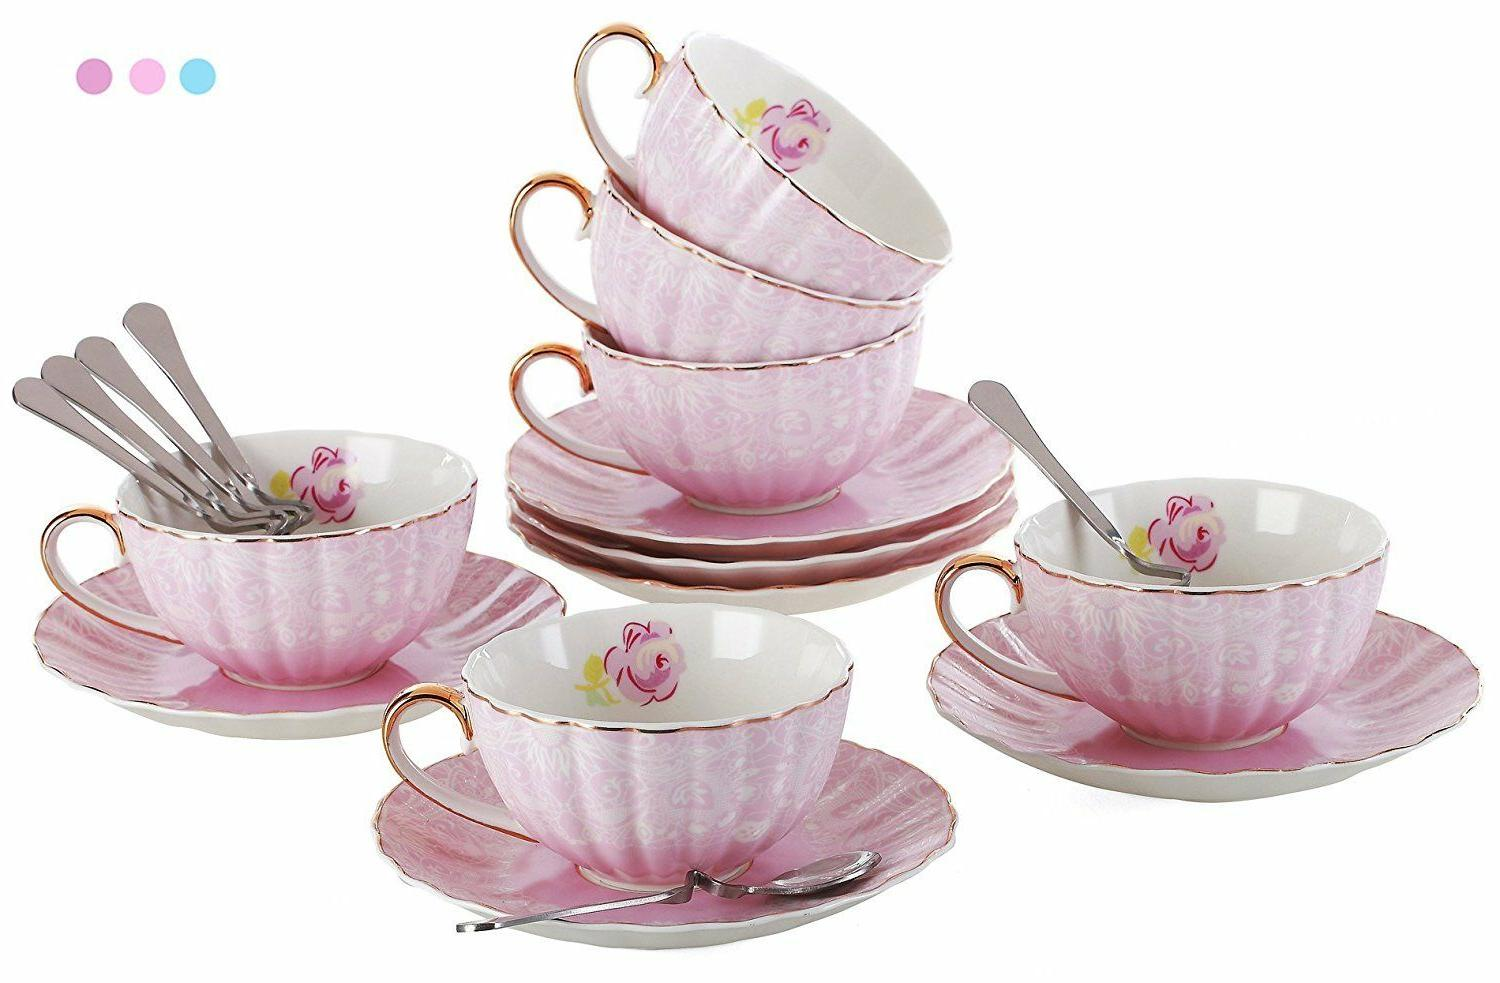 elegant tea cup with saucer and spoon